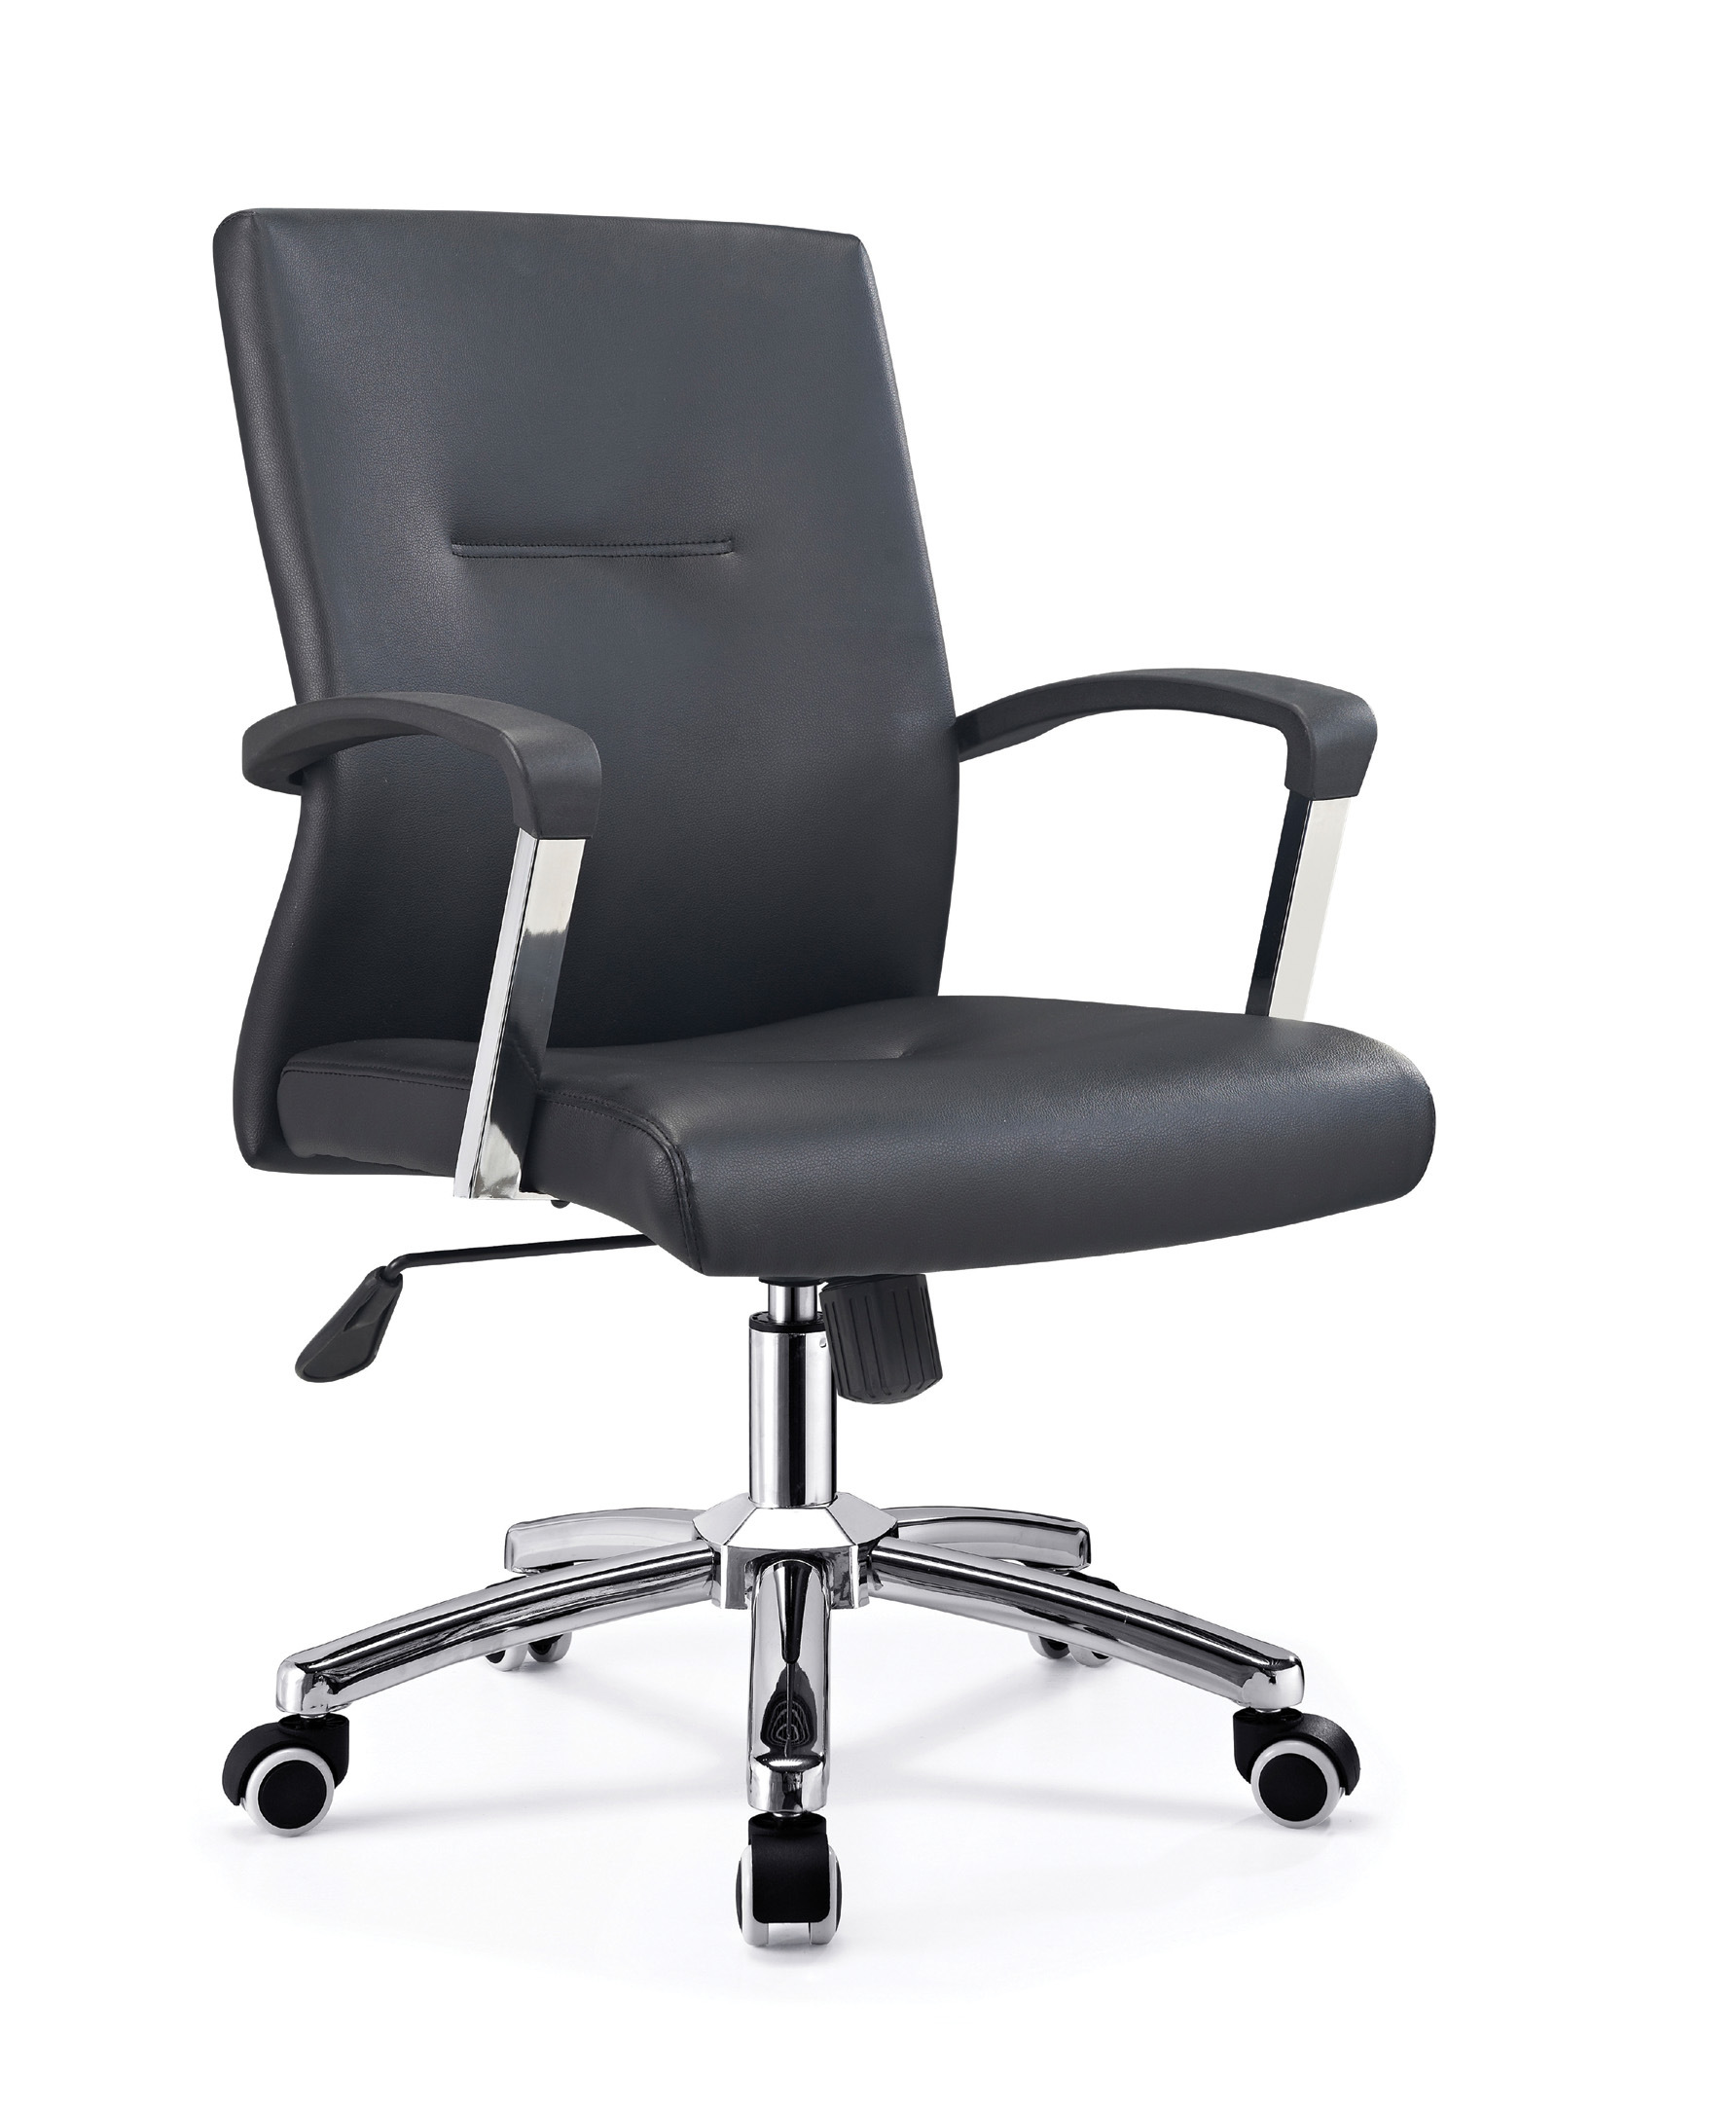 Chinese Modern Office Furniture Chairs Armchair Leather Guest Computer Chair B647 China Office Chair Swivel Chair